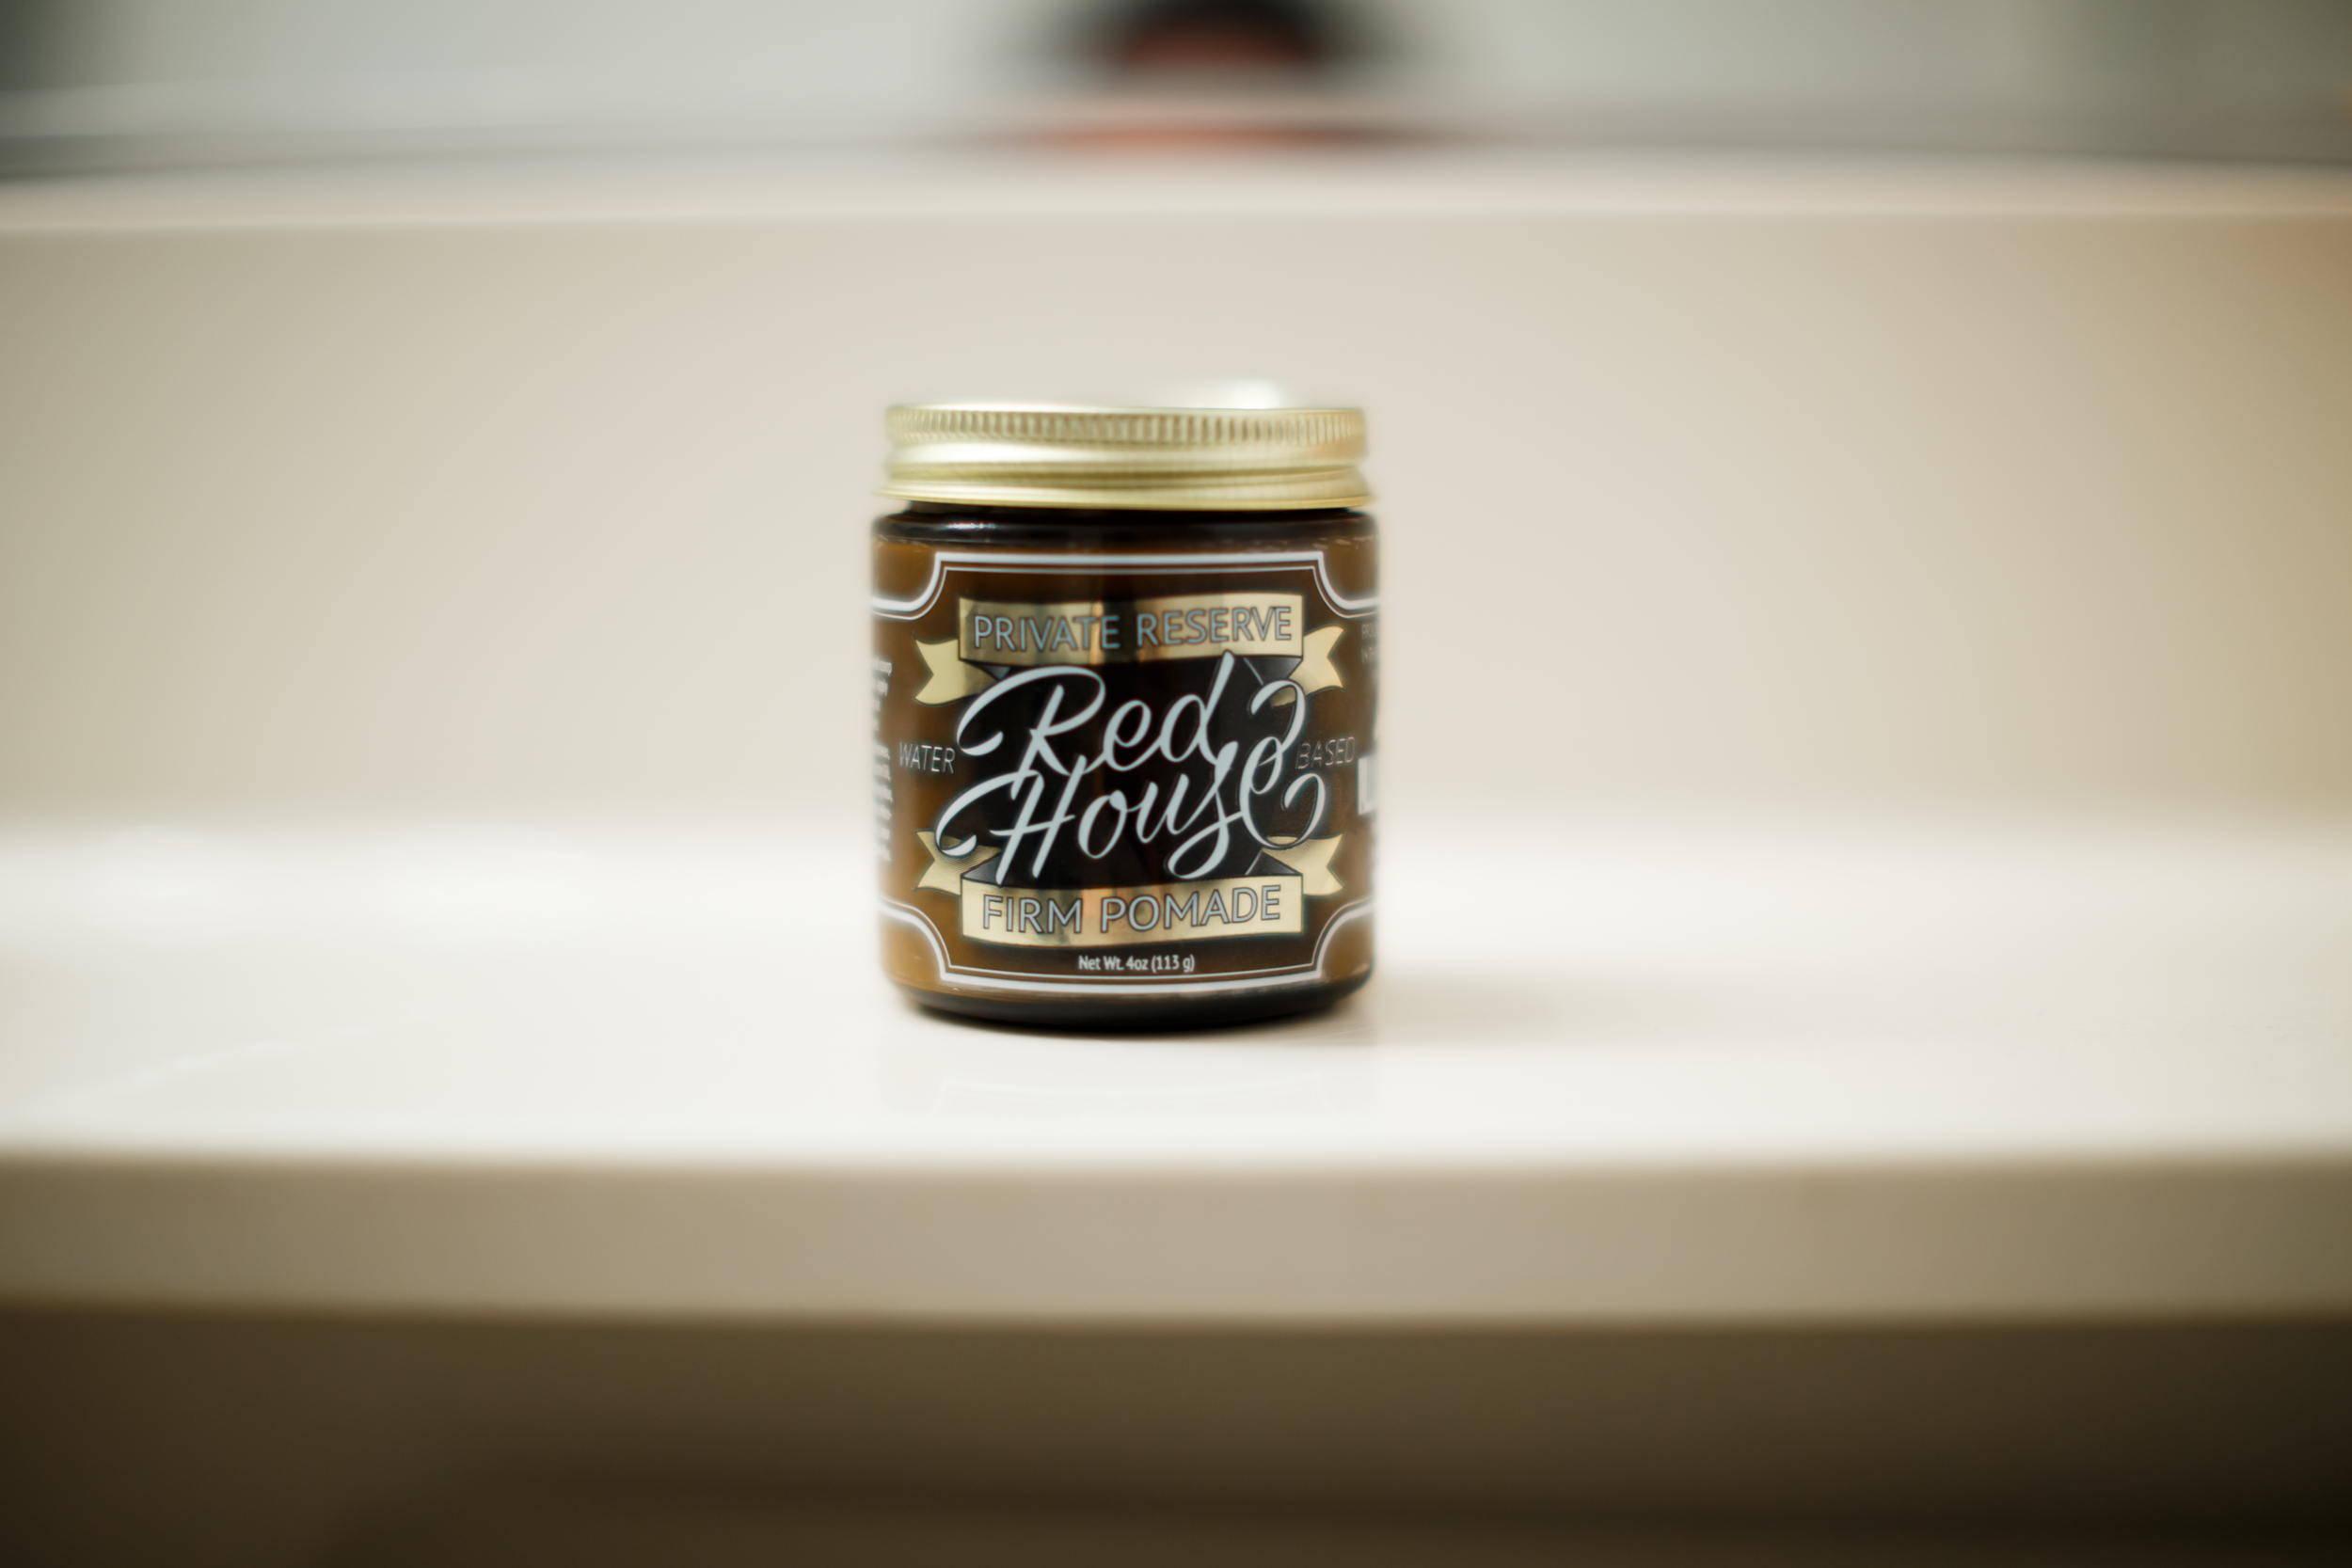 The Red House Private Reserve Firm Pomade Review by The Pomp | Thank You Based Pomp